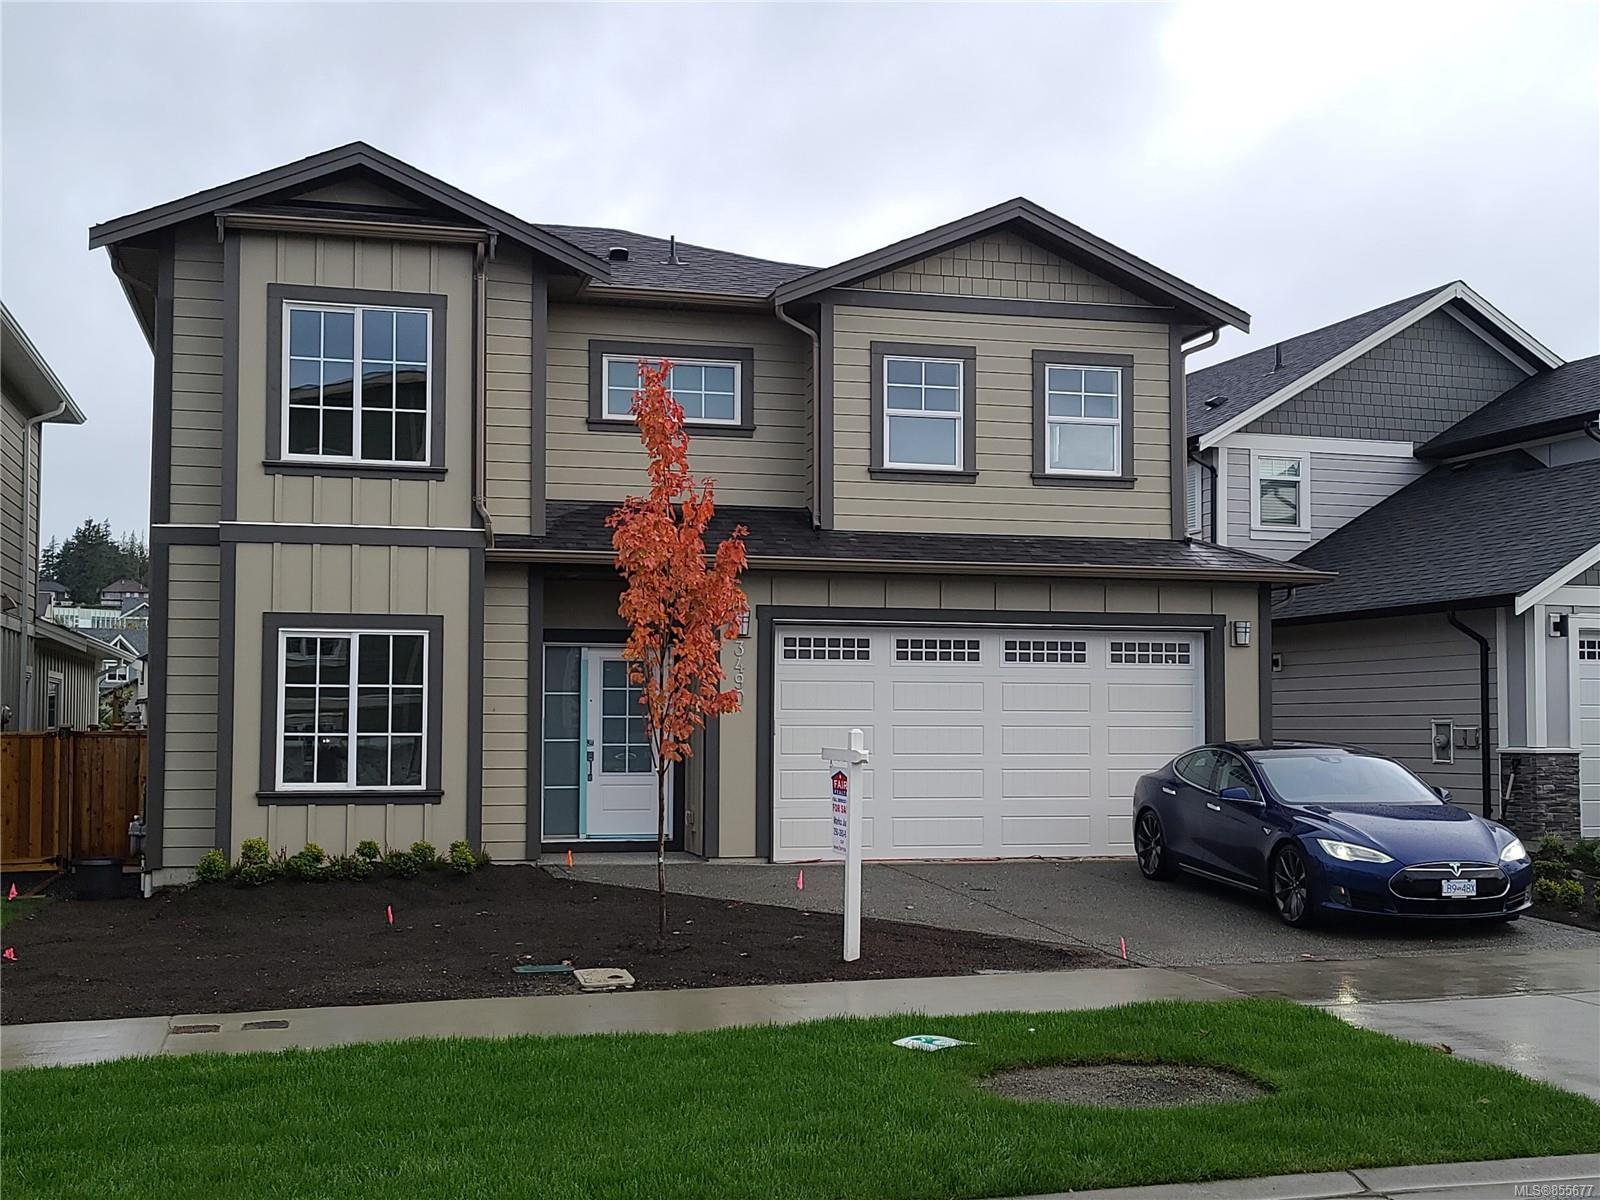 Main Photo: 3490 Dunlin St in : Co Royal Bay Single Family Detached for sale (Colwood)  : MLS®# 855677